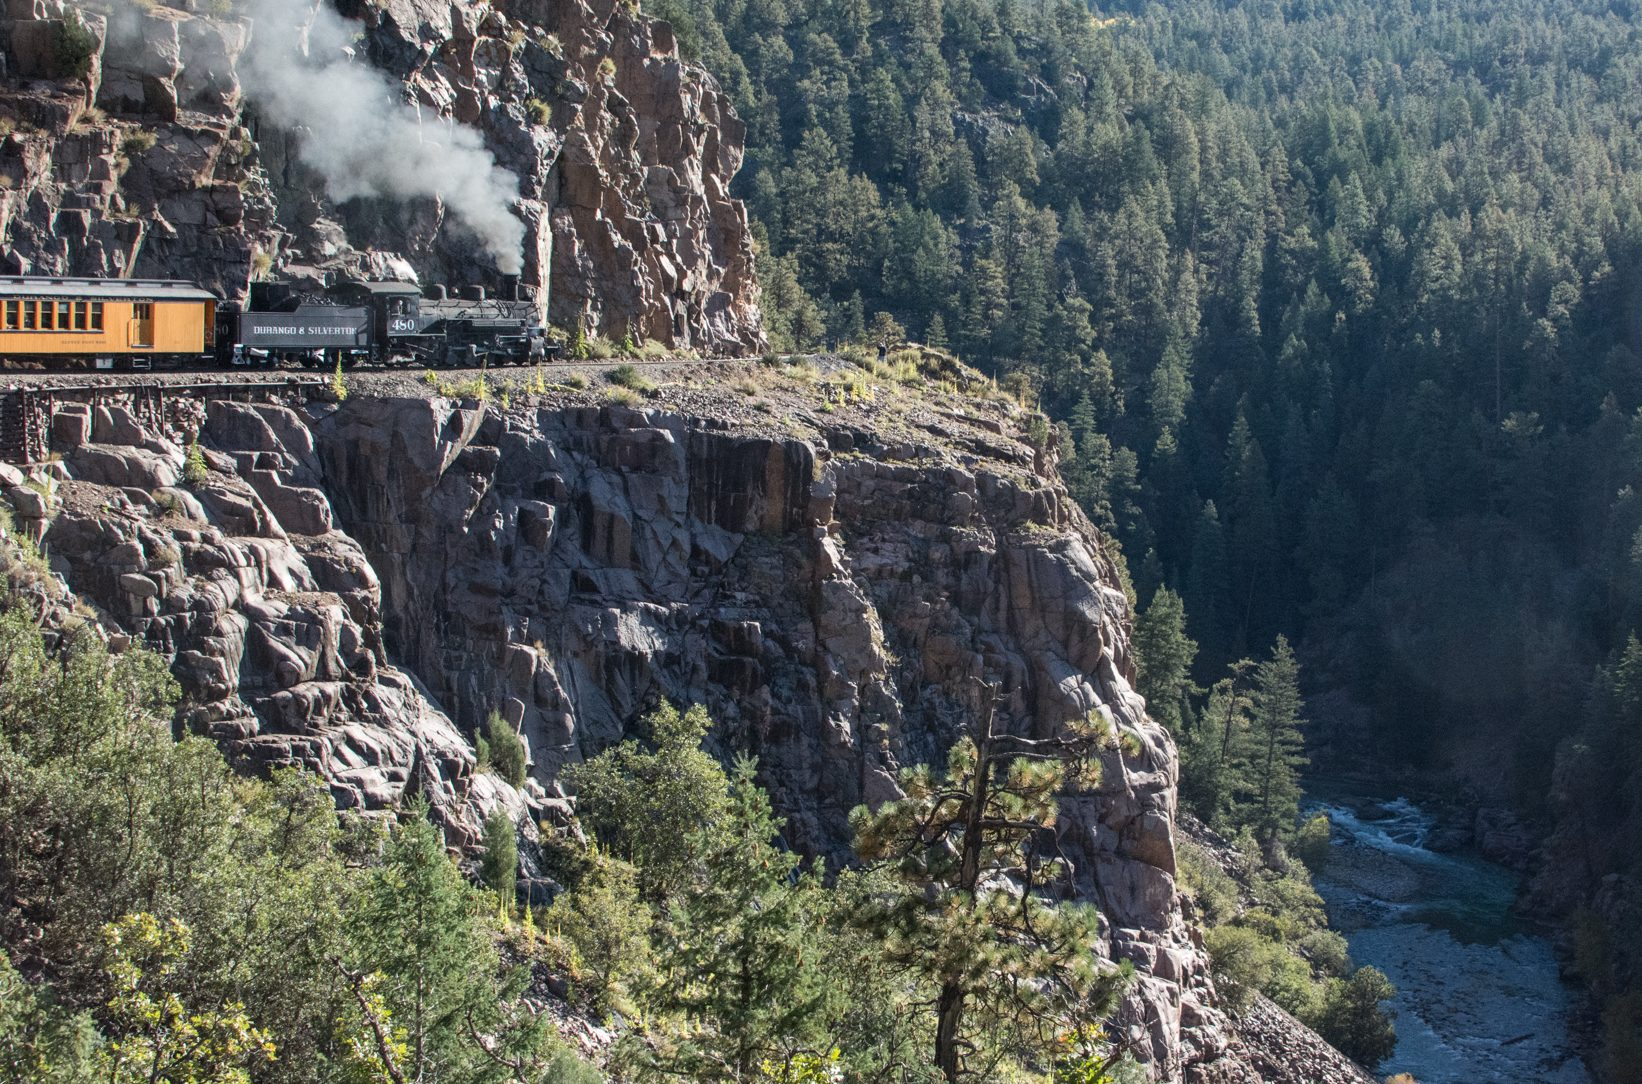 Durango train zip line